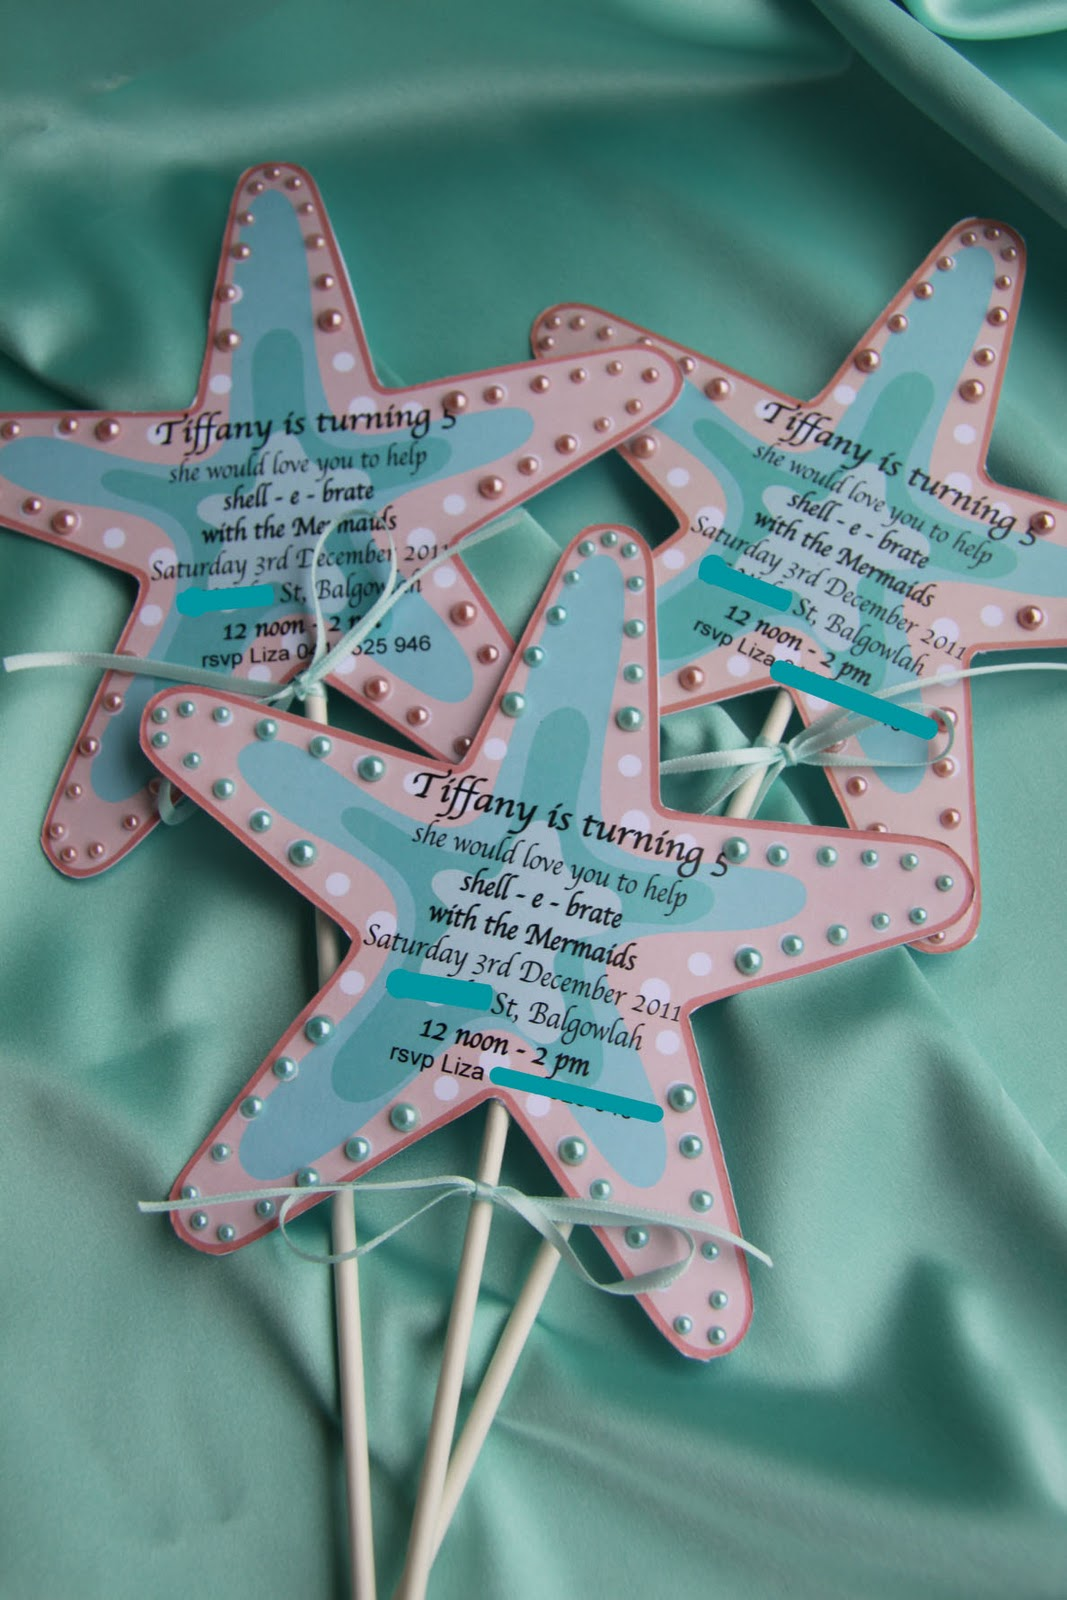 Little Mermaid Handmade Invitations is beautiful invitation ideas